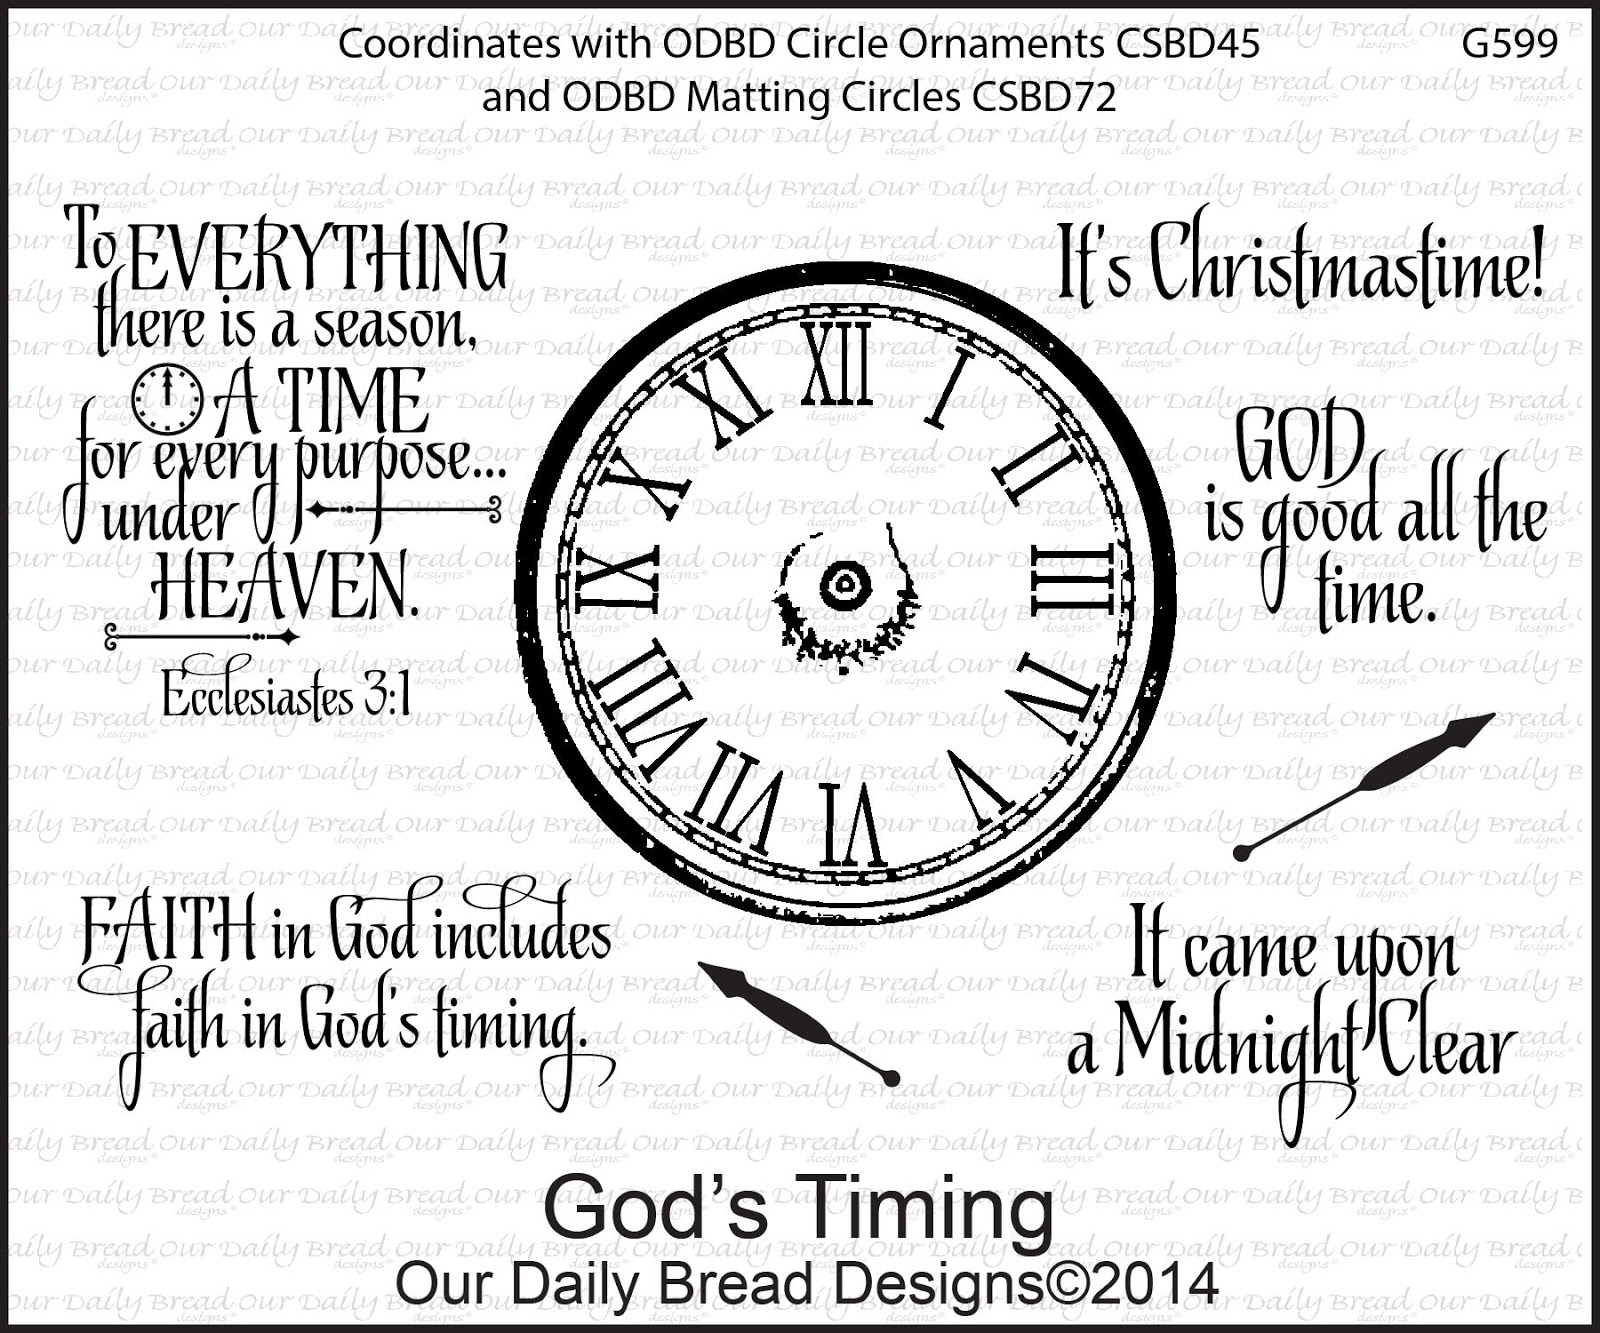 https://www.ourdailybreaddesigns.com/index.php/g599-god-s-timing.html